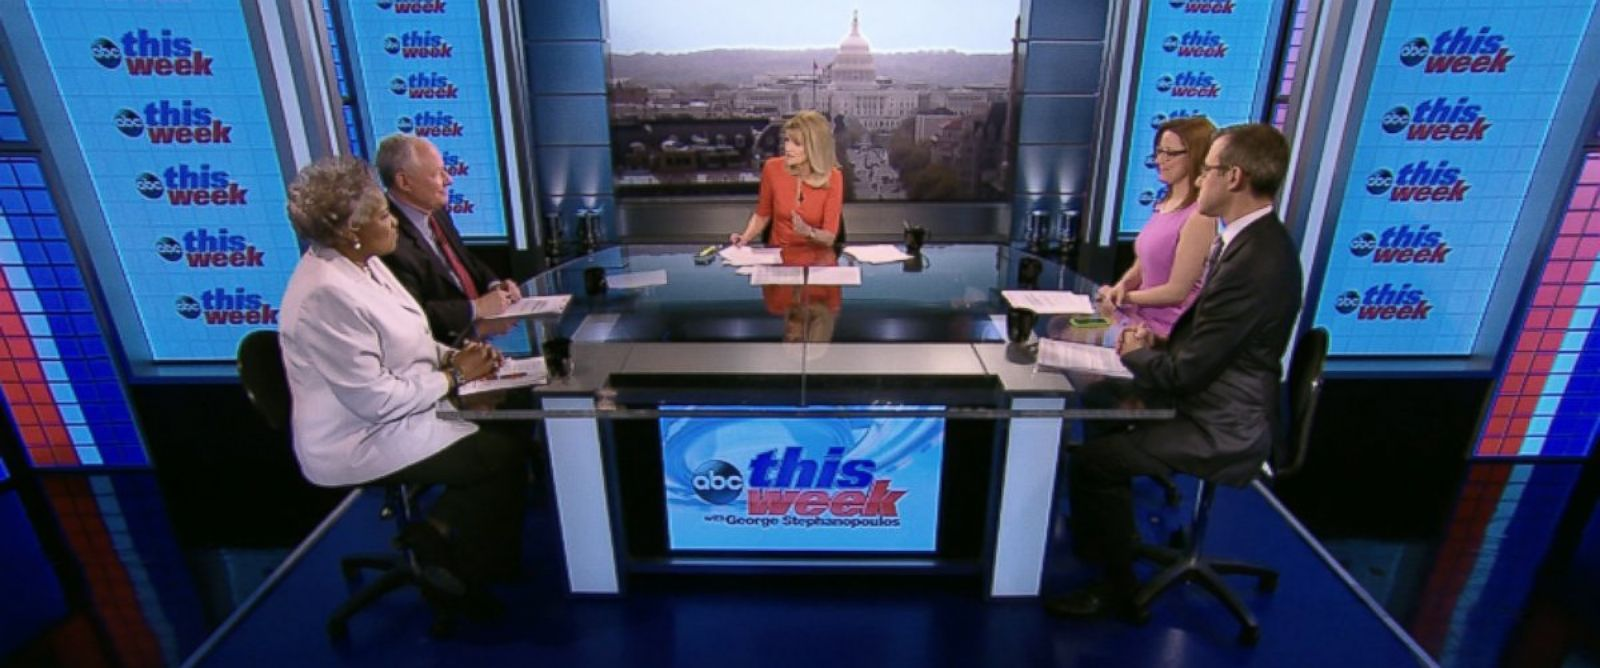 "PHOTO: Democratic Strategist and ABC News Contributor Donna Brazile, CNNs ""Crossfire"" Co-Host S.E. Cupp, The Weekly Standard Editor Bill Kristol and ABC News Senior Washington Correspondent Jeff Zeleny on This Week"